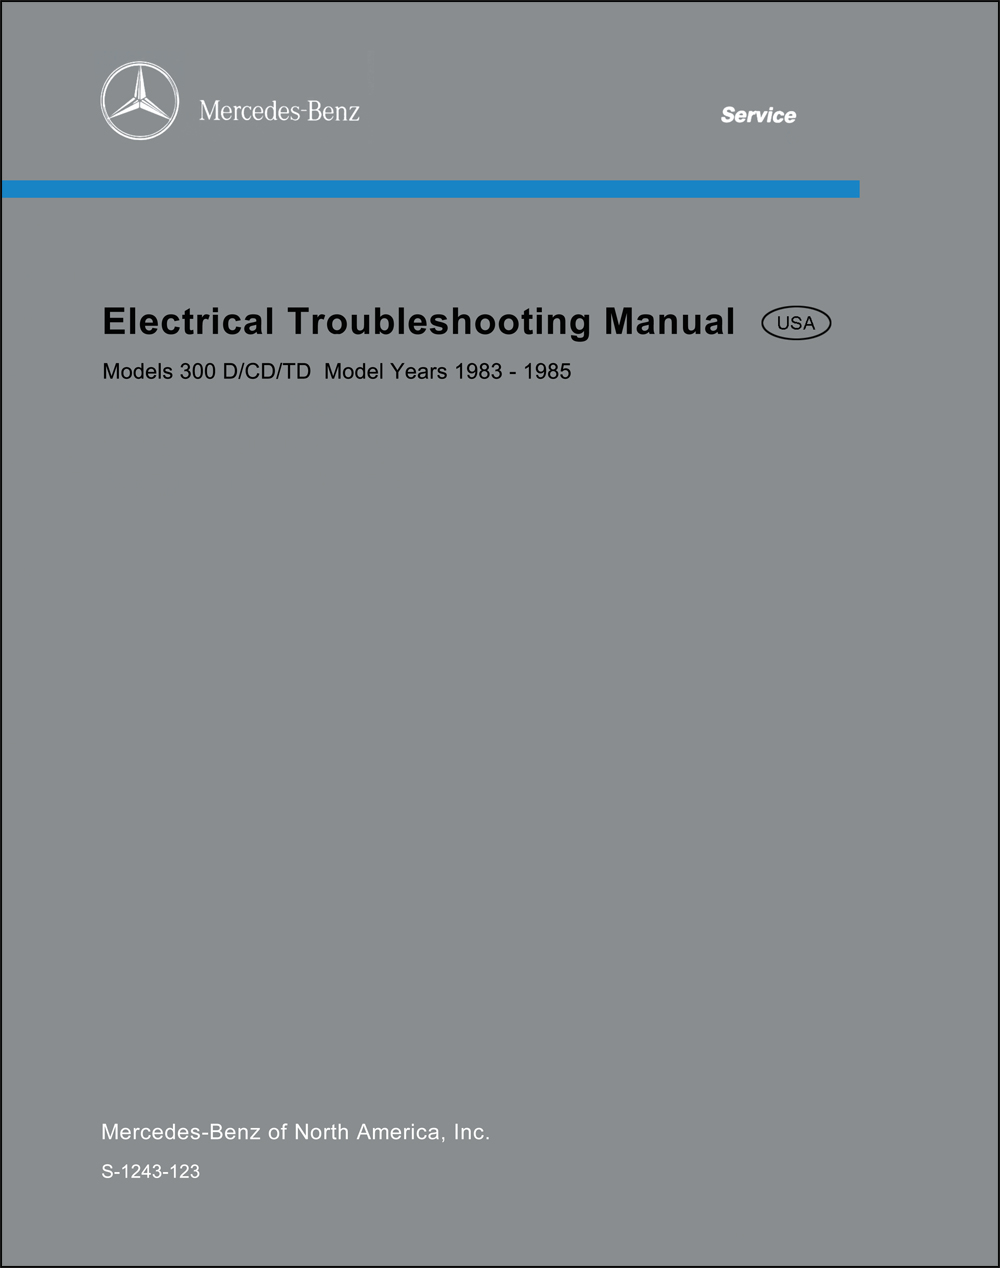 1983-1985 Mercedes 300 D/CD/TD (123) Electrical Troubleshooting Manual Reprint